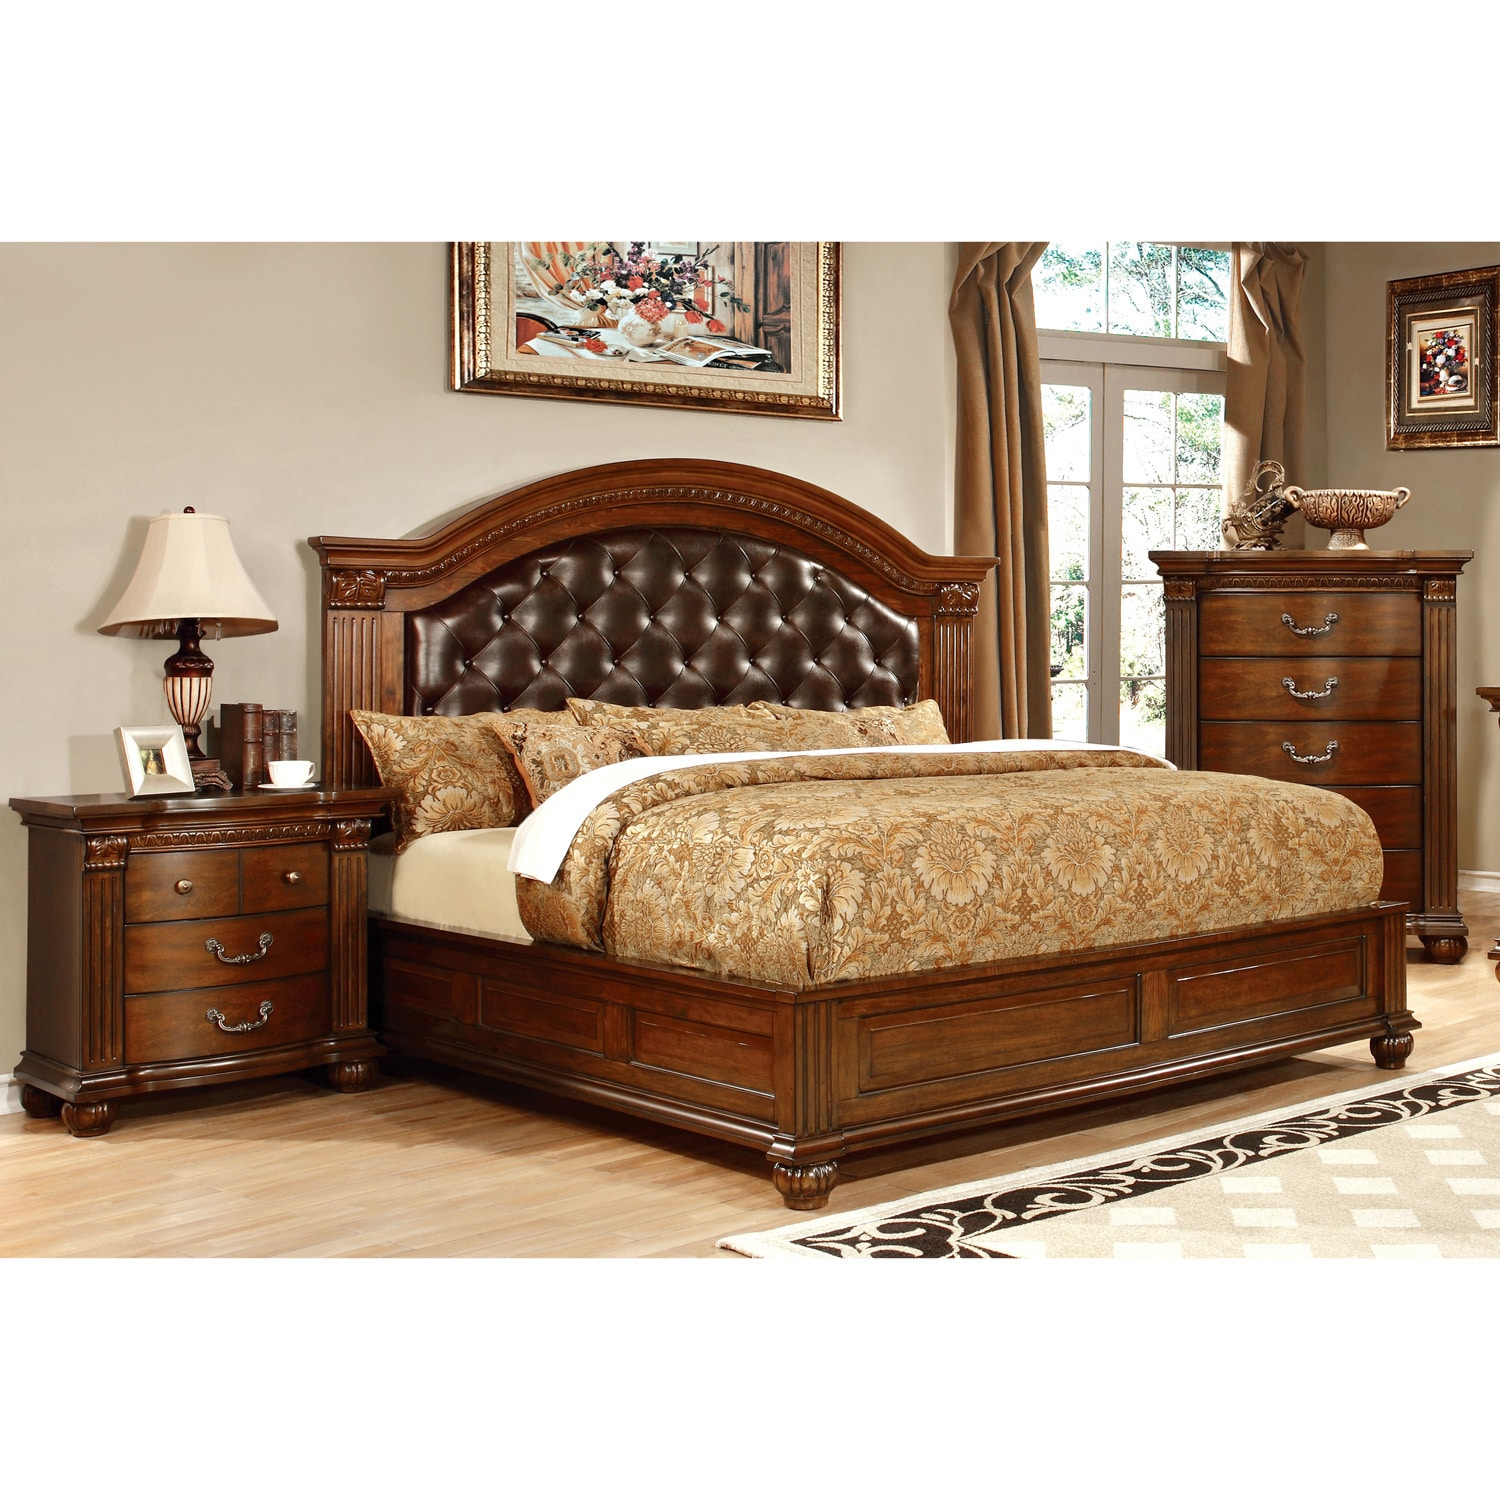 Furniture Of America Vayne Ii 3 Piece Traditional Cherry Bedroom Set